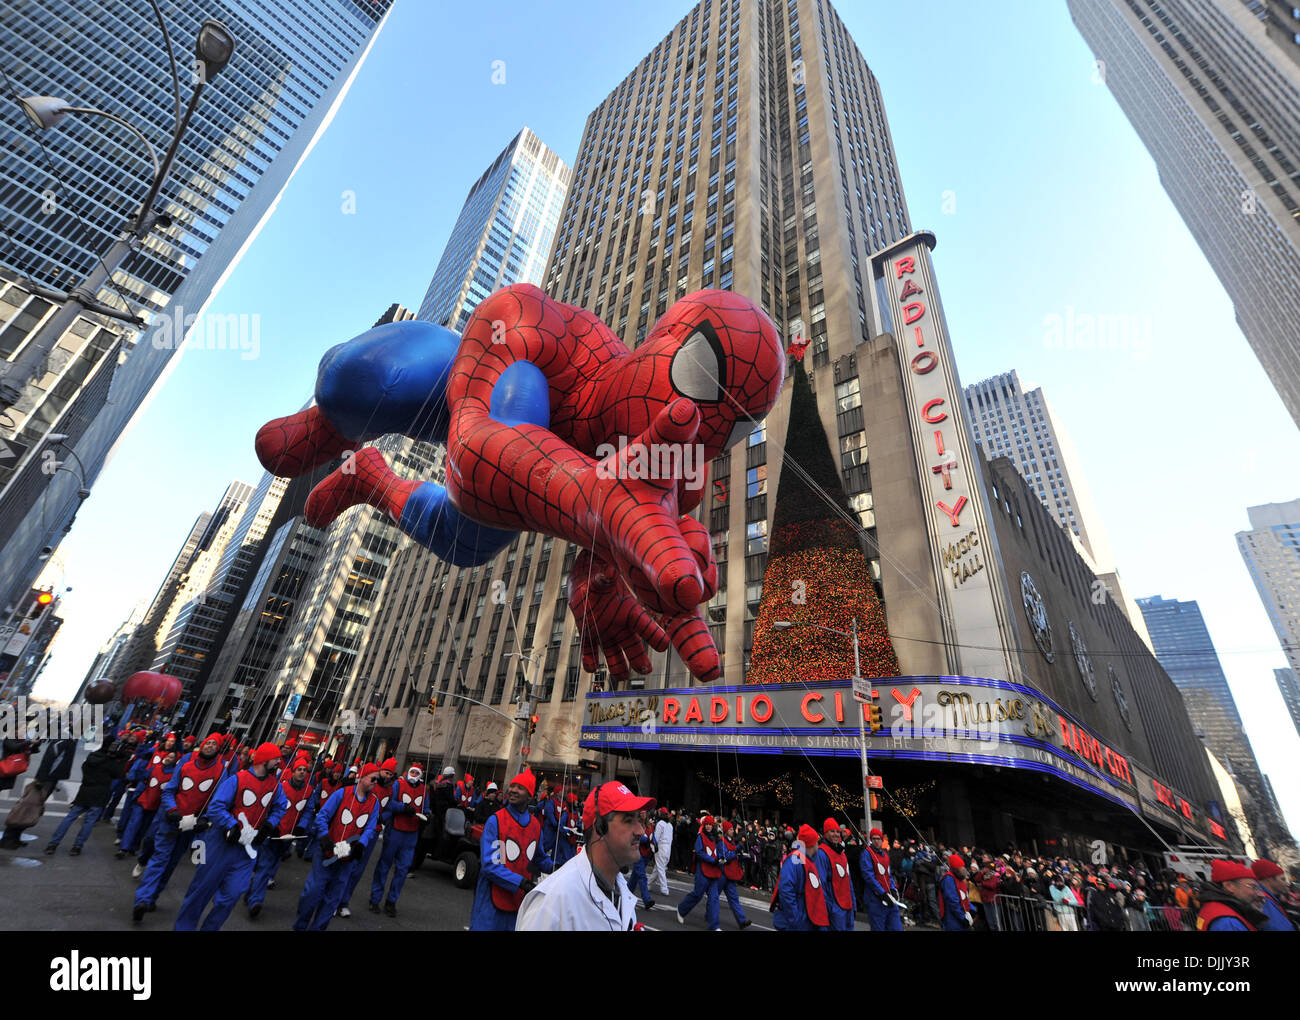 New York, USA. 28 novembre 2013. Le ballon Spiderman flotte au-dessus de la rue pendant la Macy's Thanksgiving Day Parade à New York, États-Unis, le 28 novembre 2013. (Xinhua/Wang Lei/Alamy Live News) Photo Stock